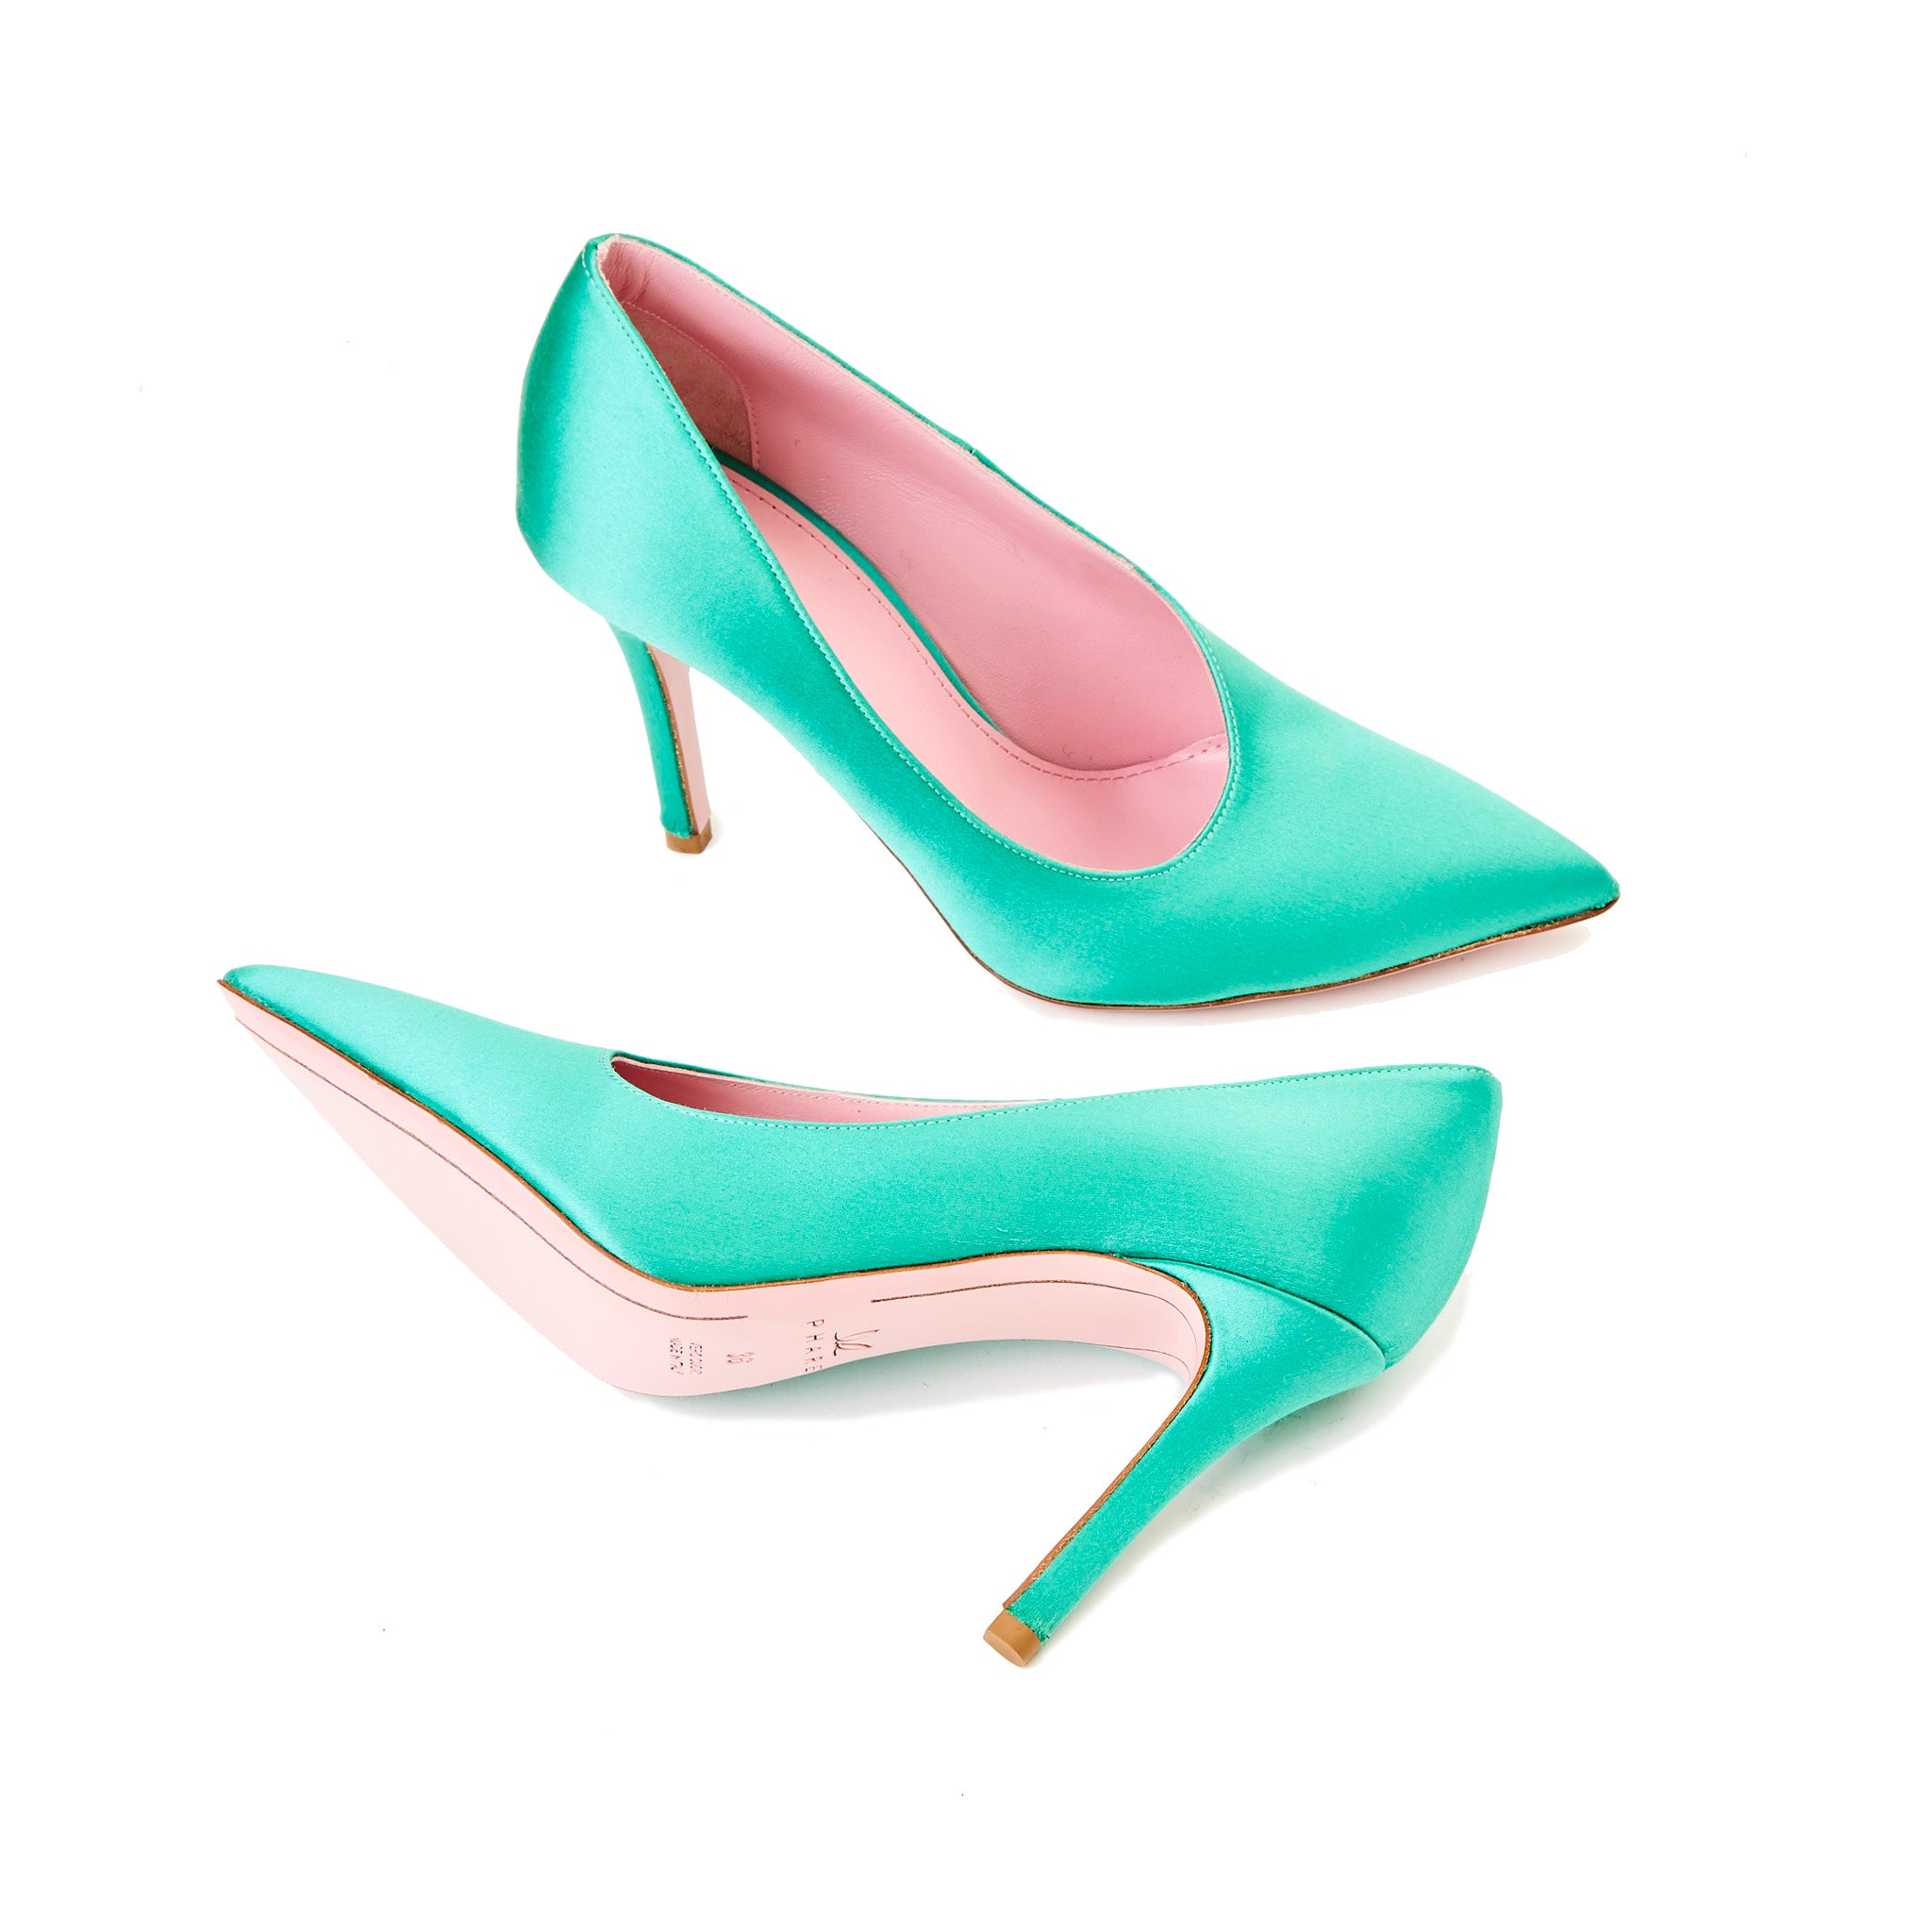 Phare seta asymmetrical pump in verde silk satin sole view